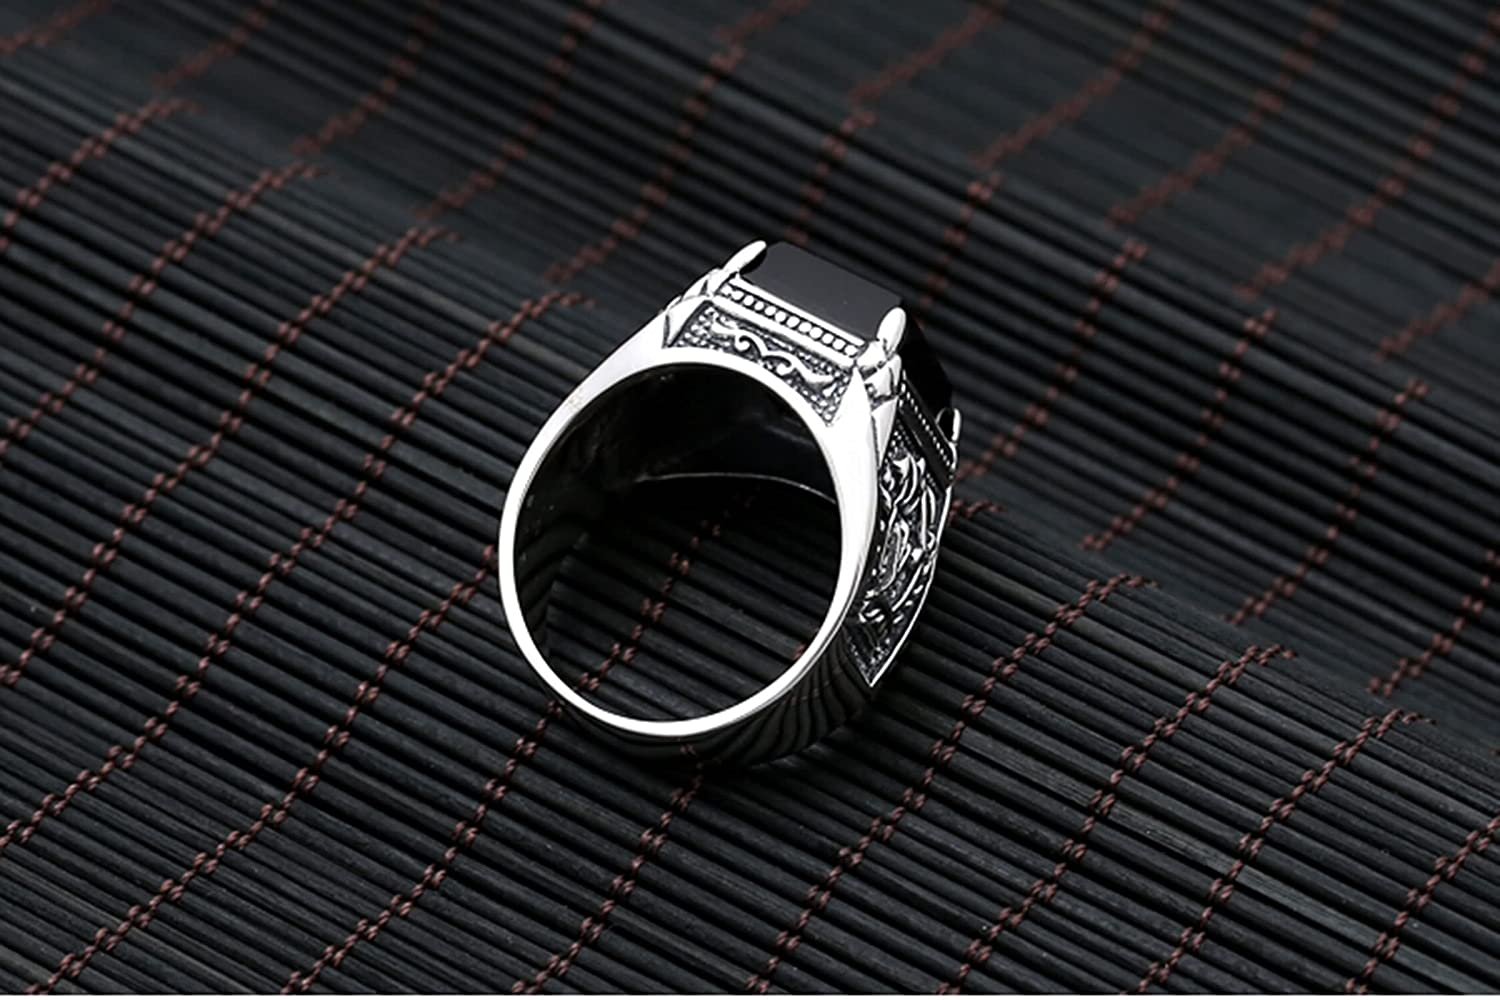 Bishilin S925 Sterling Silver Ring Band Black Agate Square Silver Black Men Rings Unique Size 10